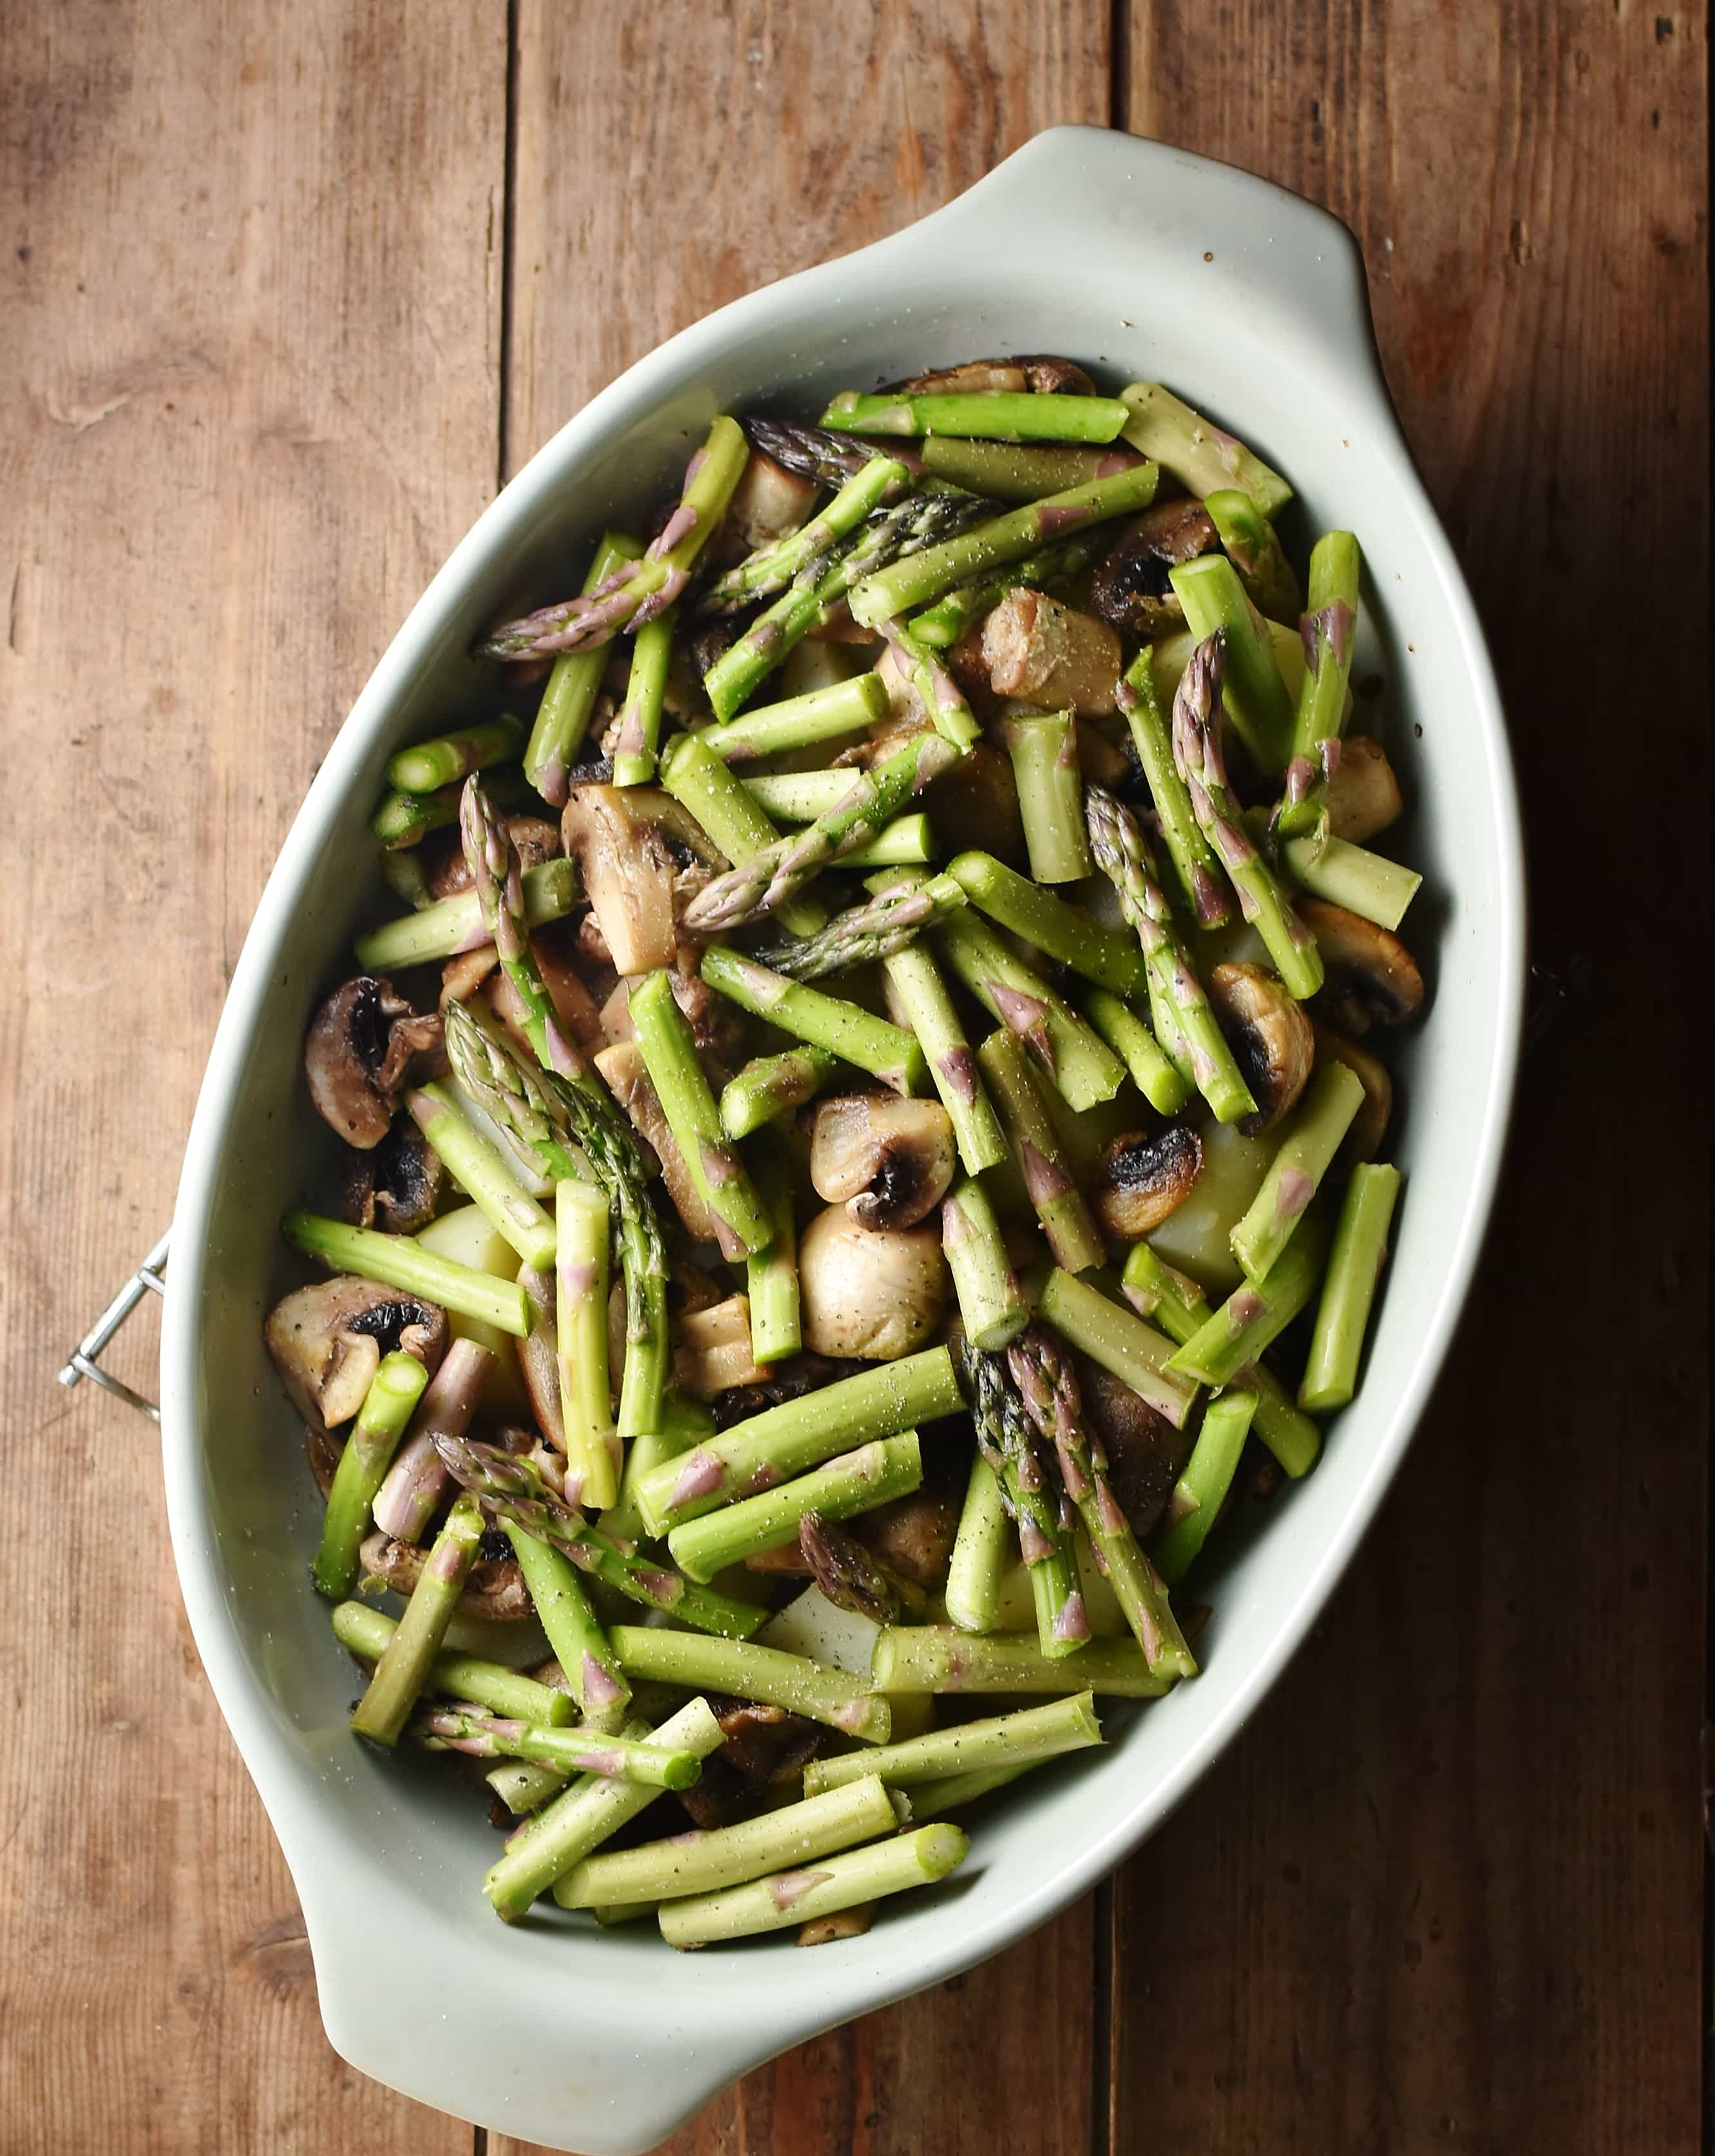 Chopped asparagus and mushrooms in oval dish.